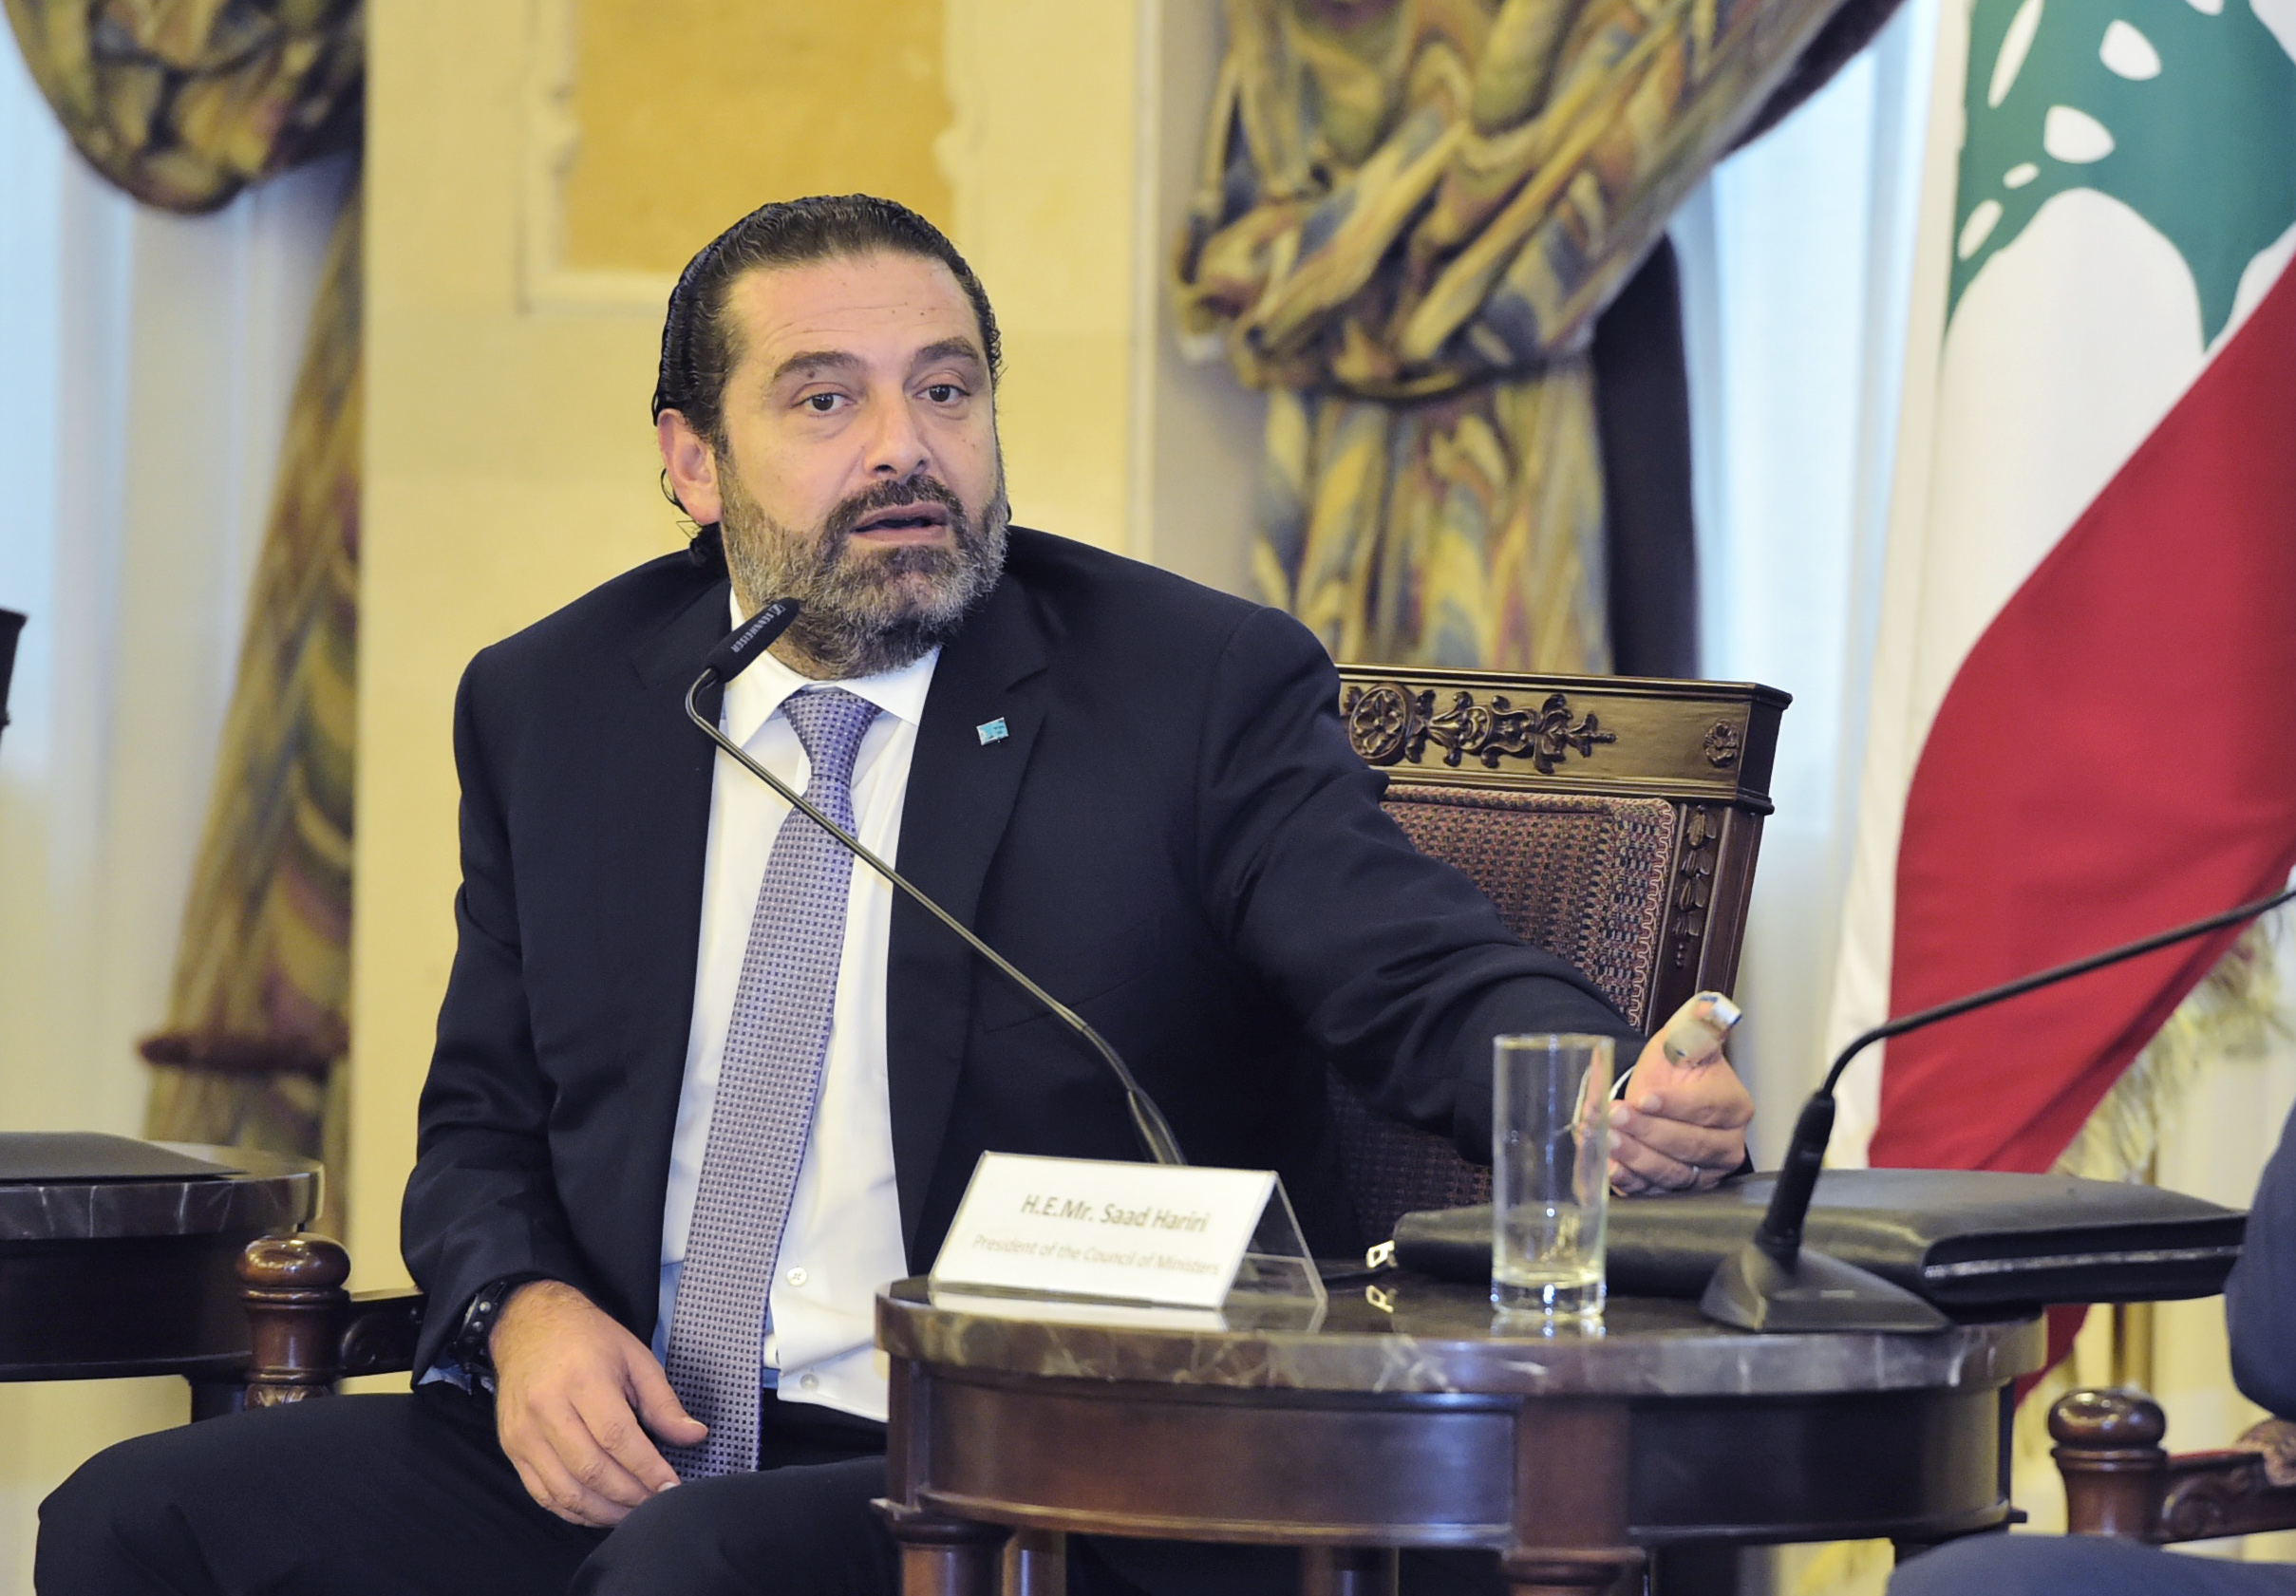 Pr Minister Saad Hariri Attends a Agriculture Conference at the Grand Serail 2